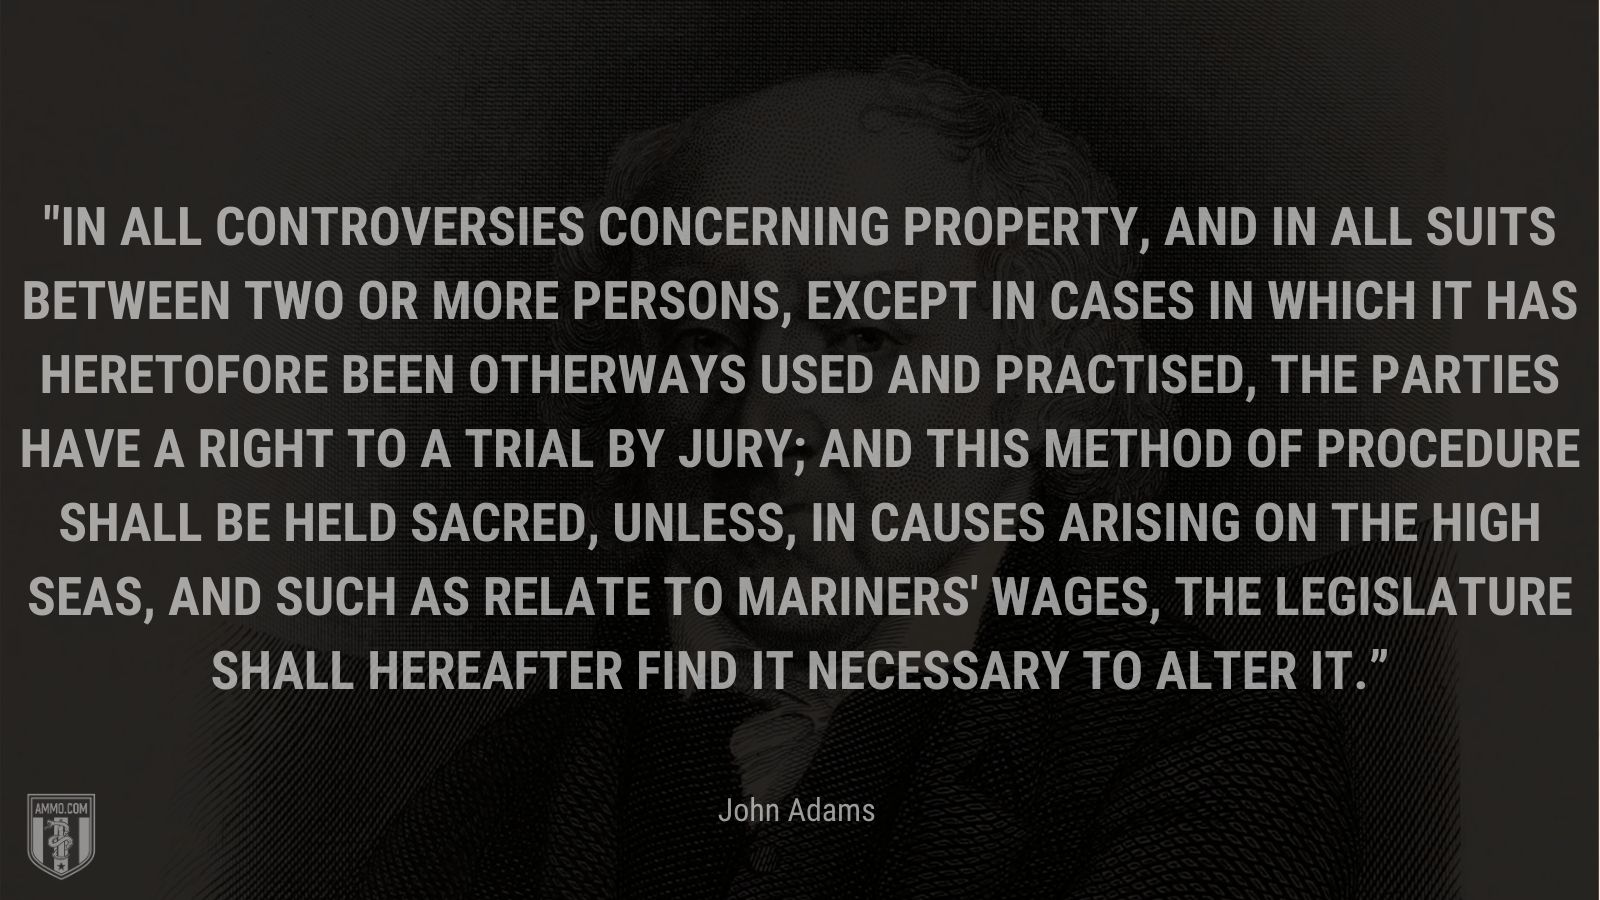 """""""In all controversies concerning property, and in all suits between two or more persons, except in cases in which it has heretofore been otherways used and practised, the parties have a right to a trial by jury; and this method of procedure shall be held sacred, unless, in causes arising on the high seas, and such as relate to mariners' wages, the legislature shall hereafter find it necessary to alter it."""" - John Adams"""